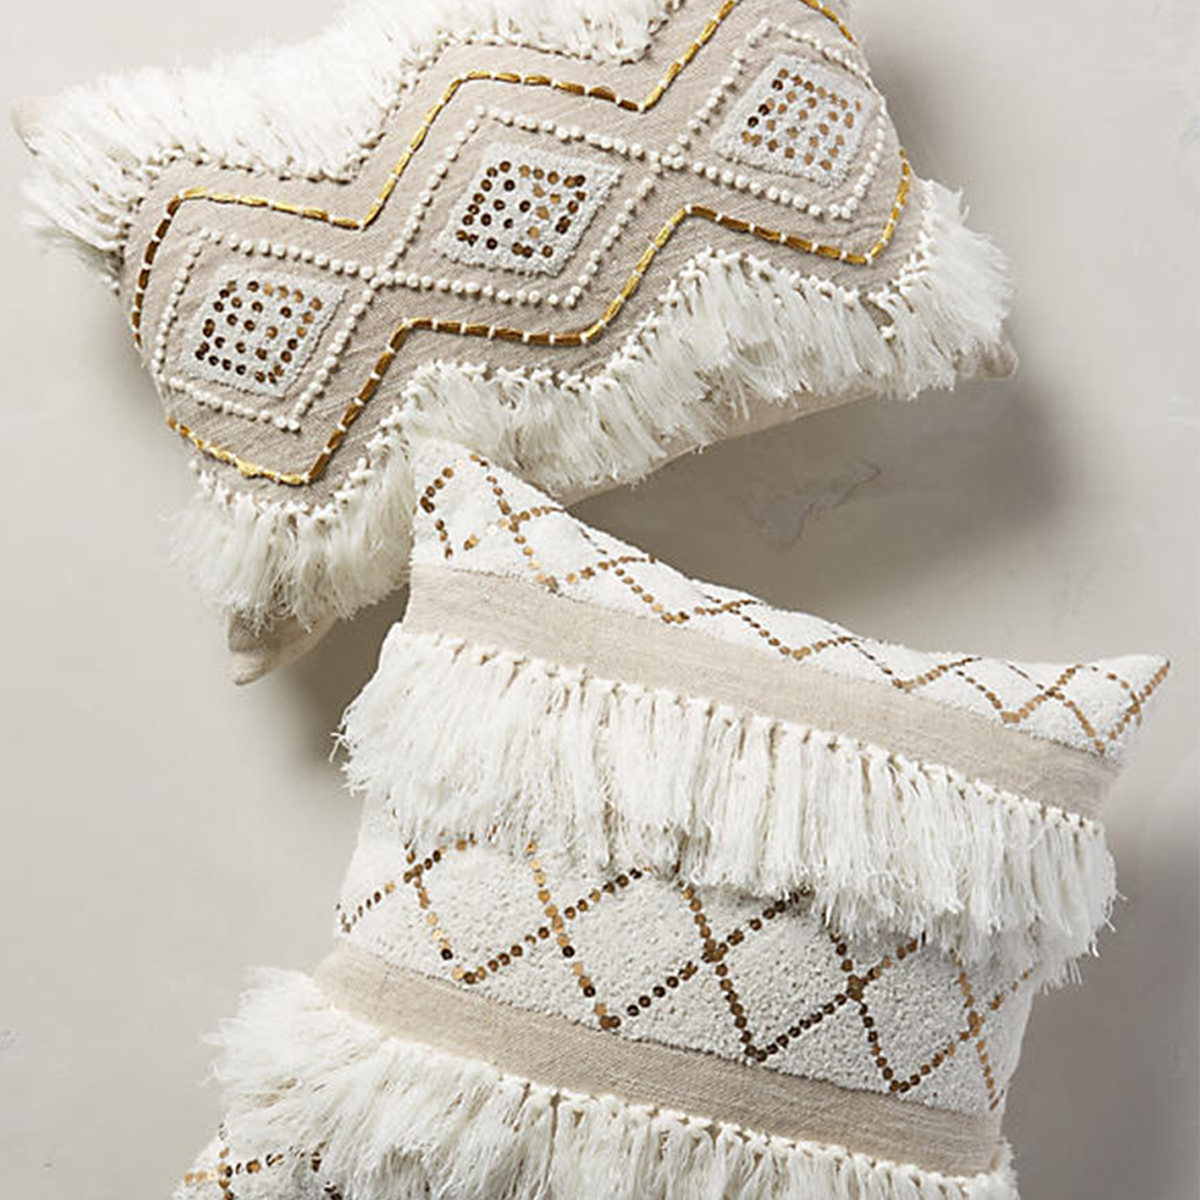 Moroccan-inspired pillows with jute and linen fronts and metallic accents. photo